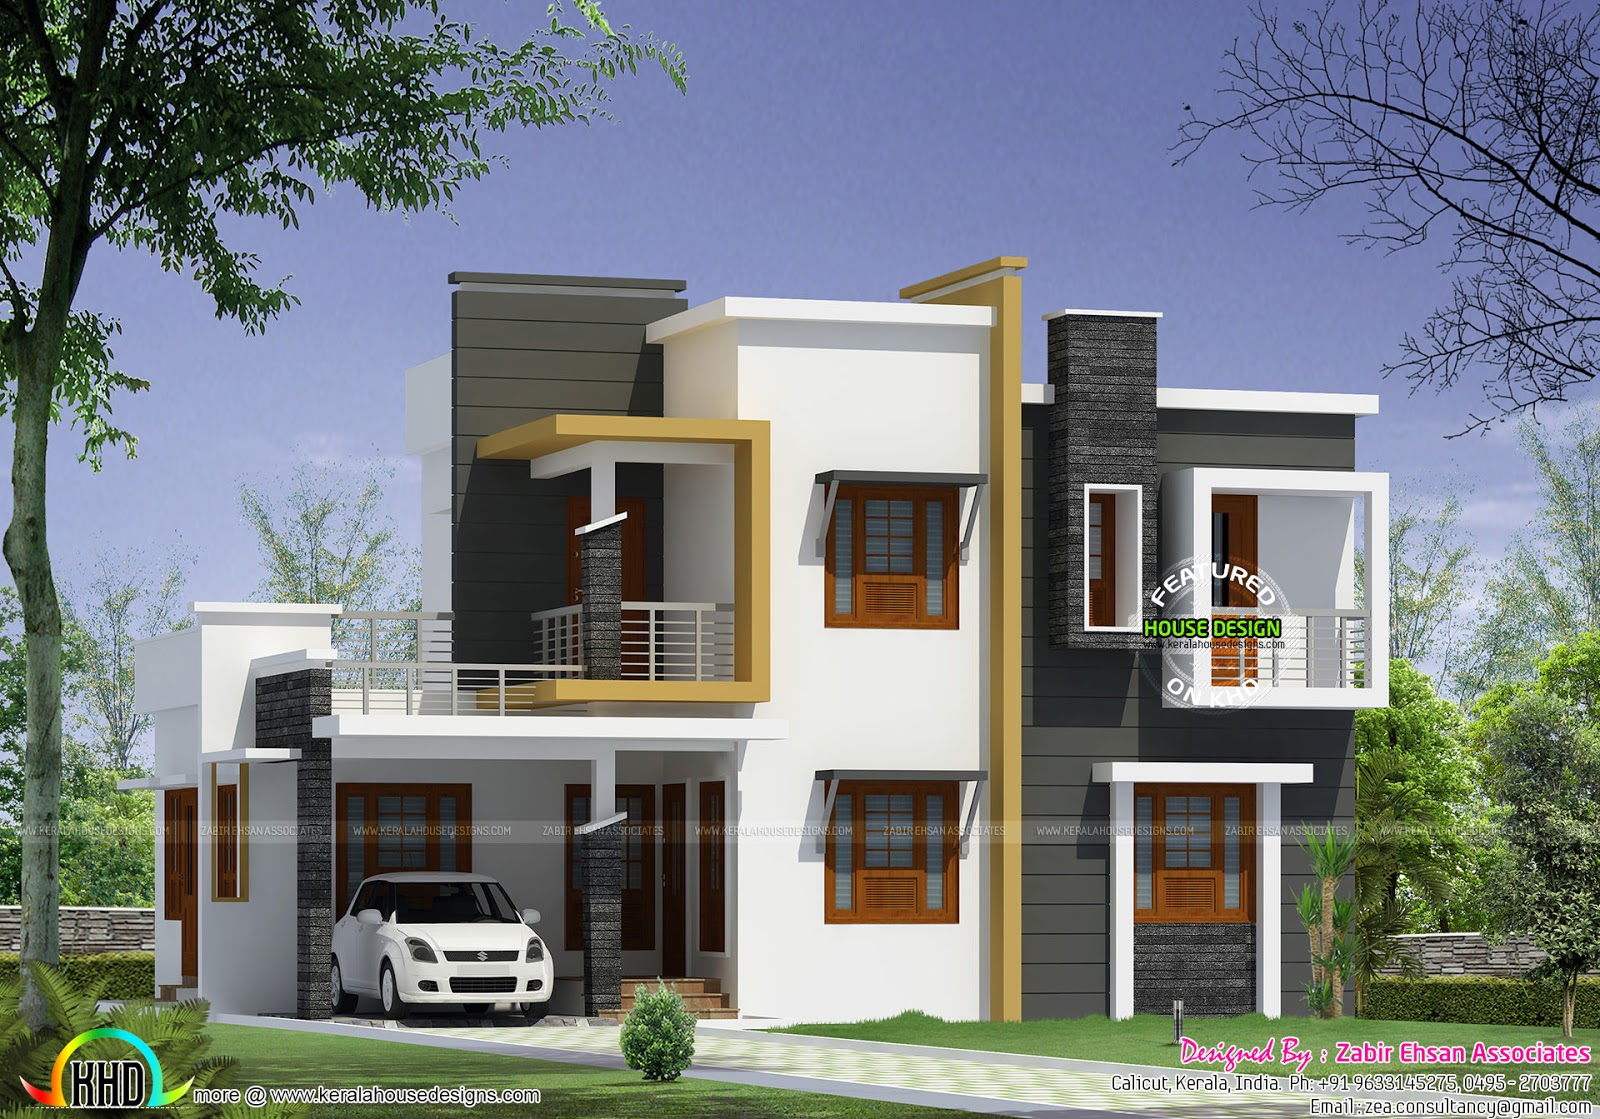 Box type modern house plan kerala home design and floor for New contemporary home designs